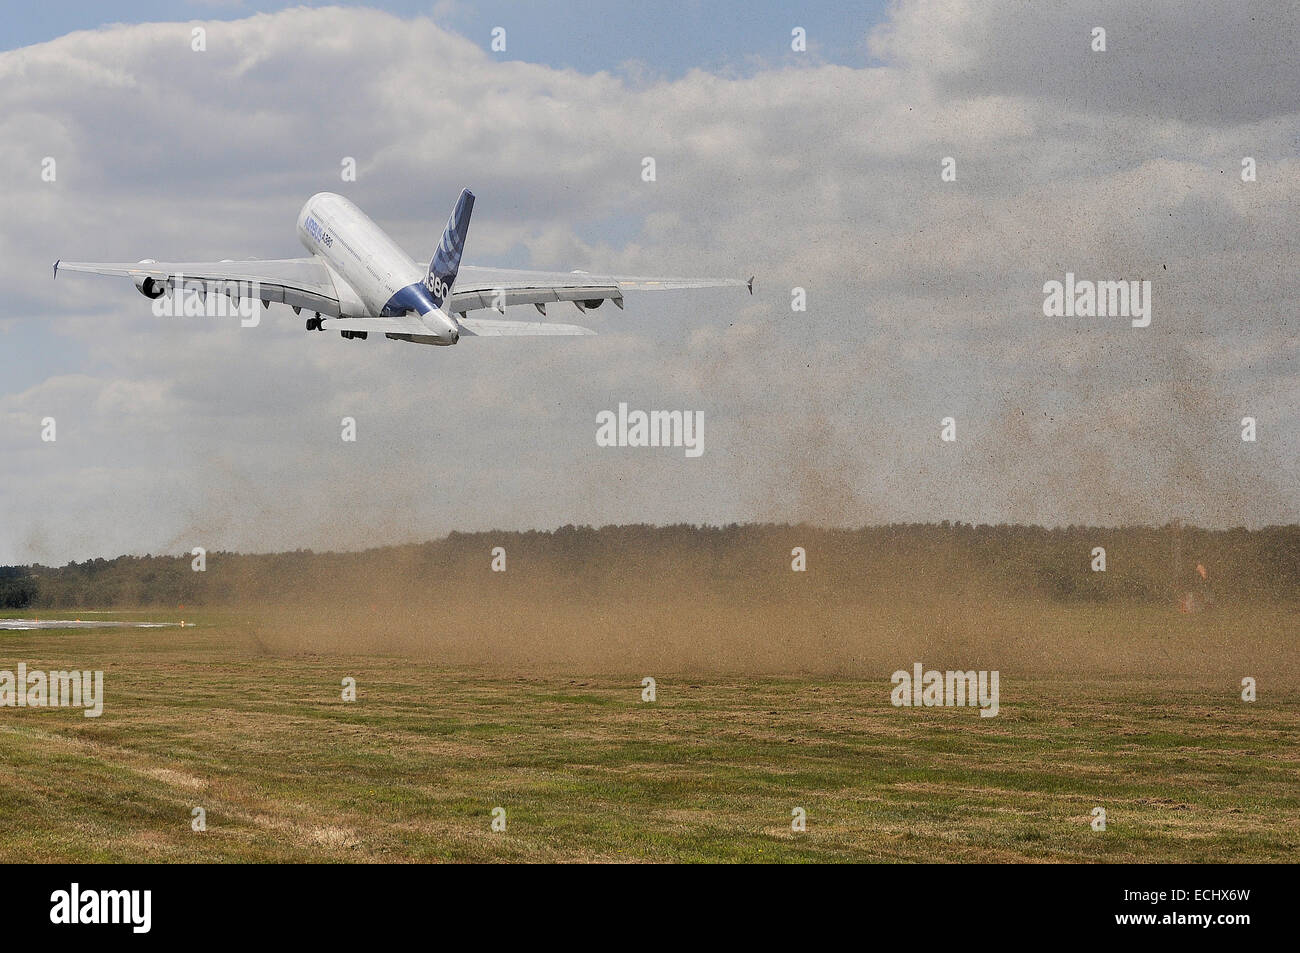 The A380 is a double-deck, wide-body, four-engine jet airliner manufactured by Airbus. It is the world's largest Stock Photo